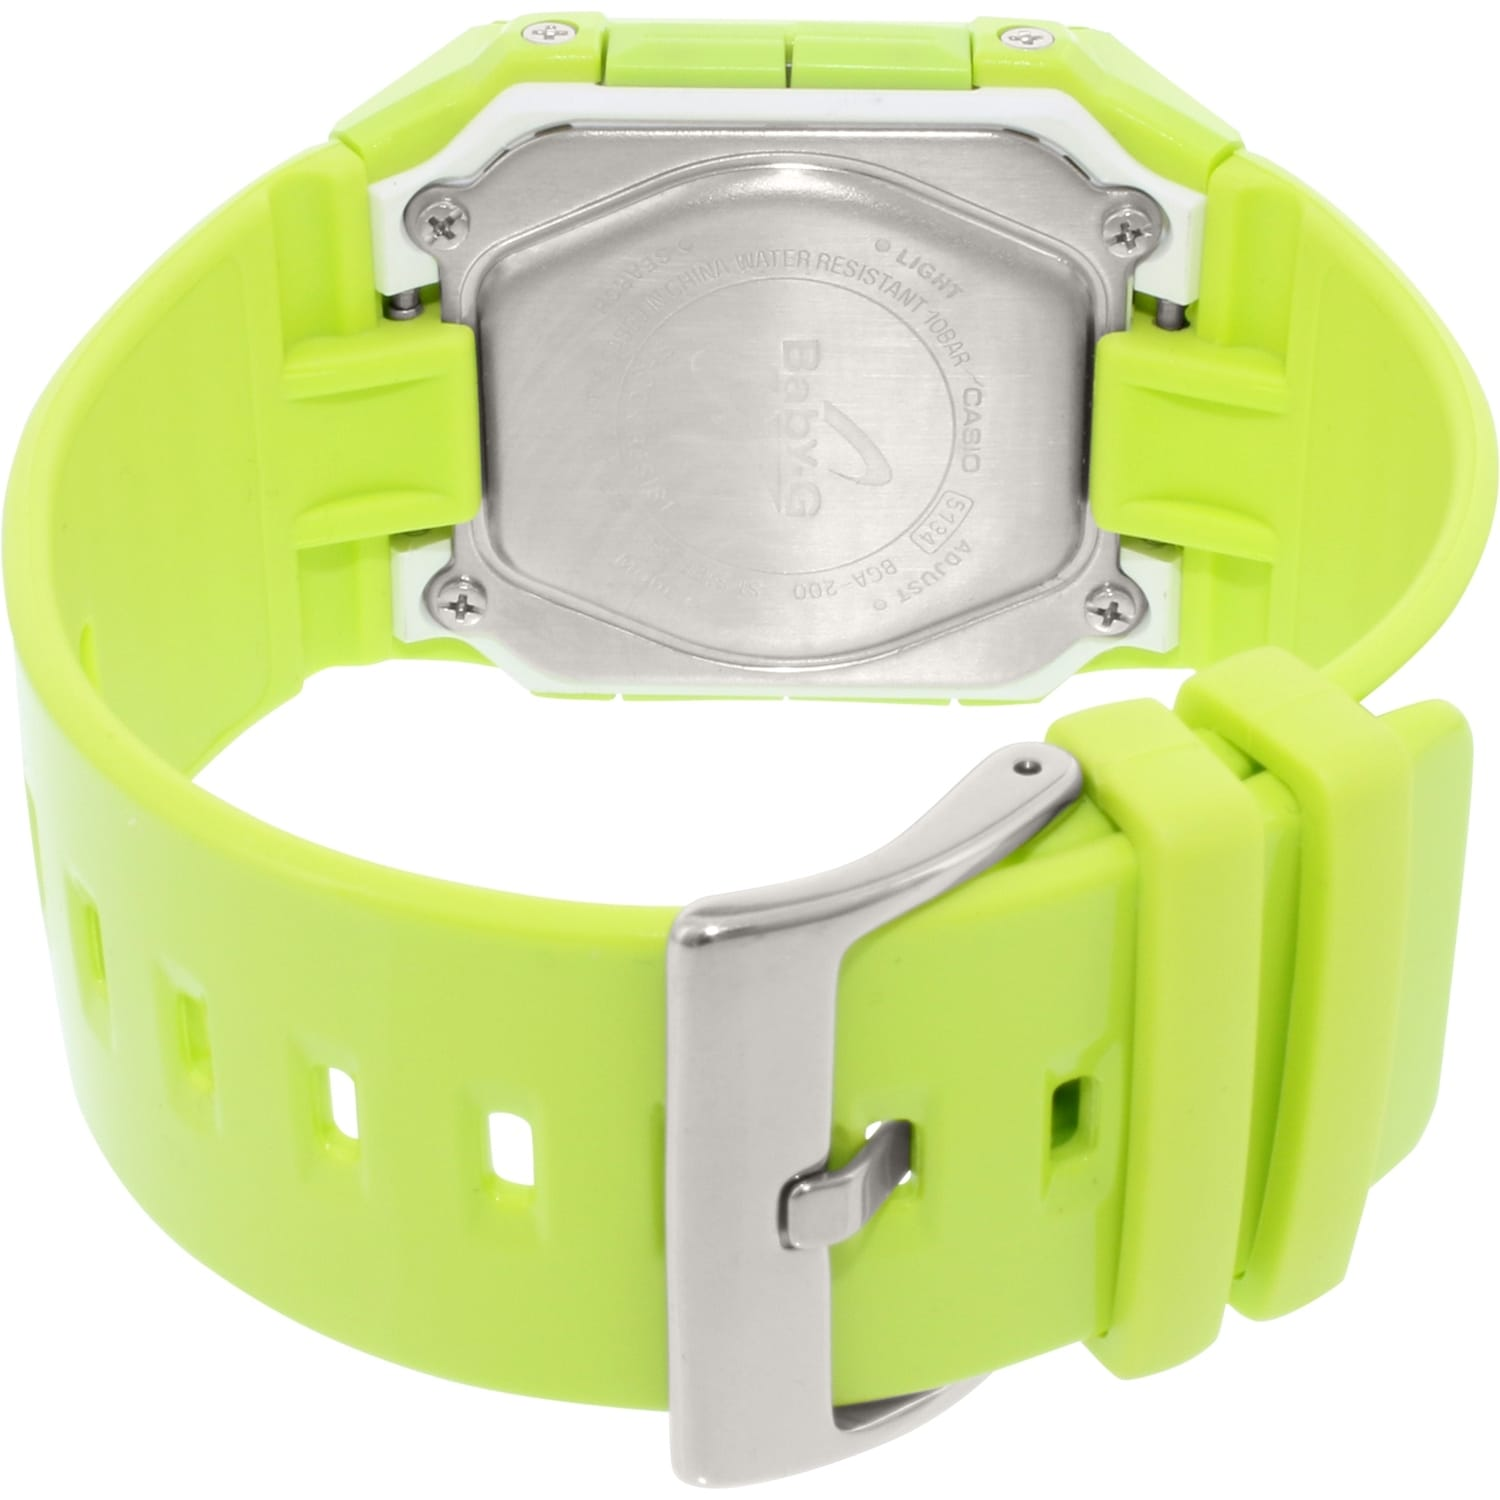 Casio Womens Baby G Bga200 3e Green Resin Quartz Fashion Watch Ba 112 4a Free Shipping Today Overstock 24841164